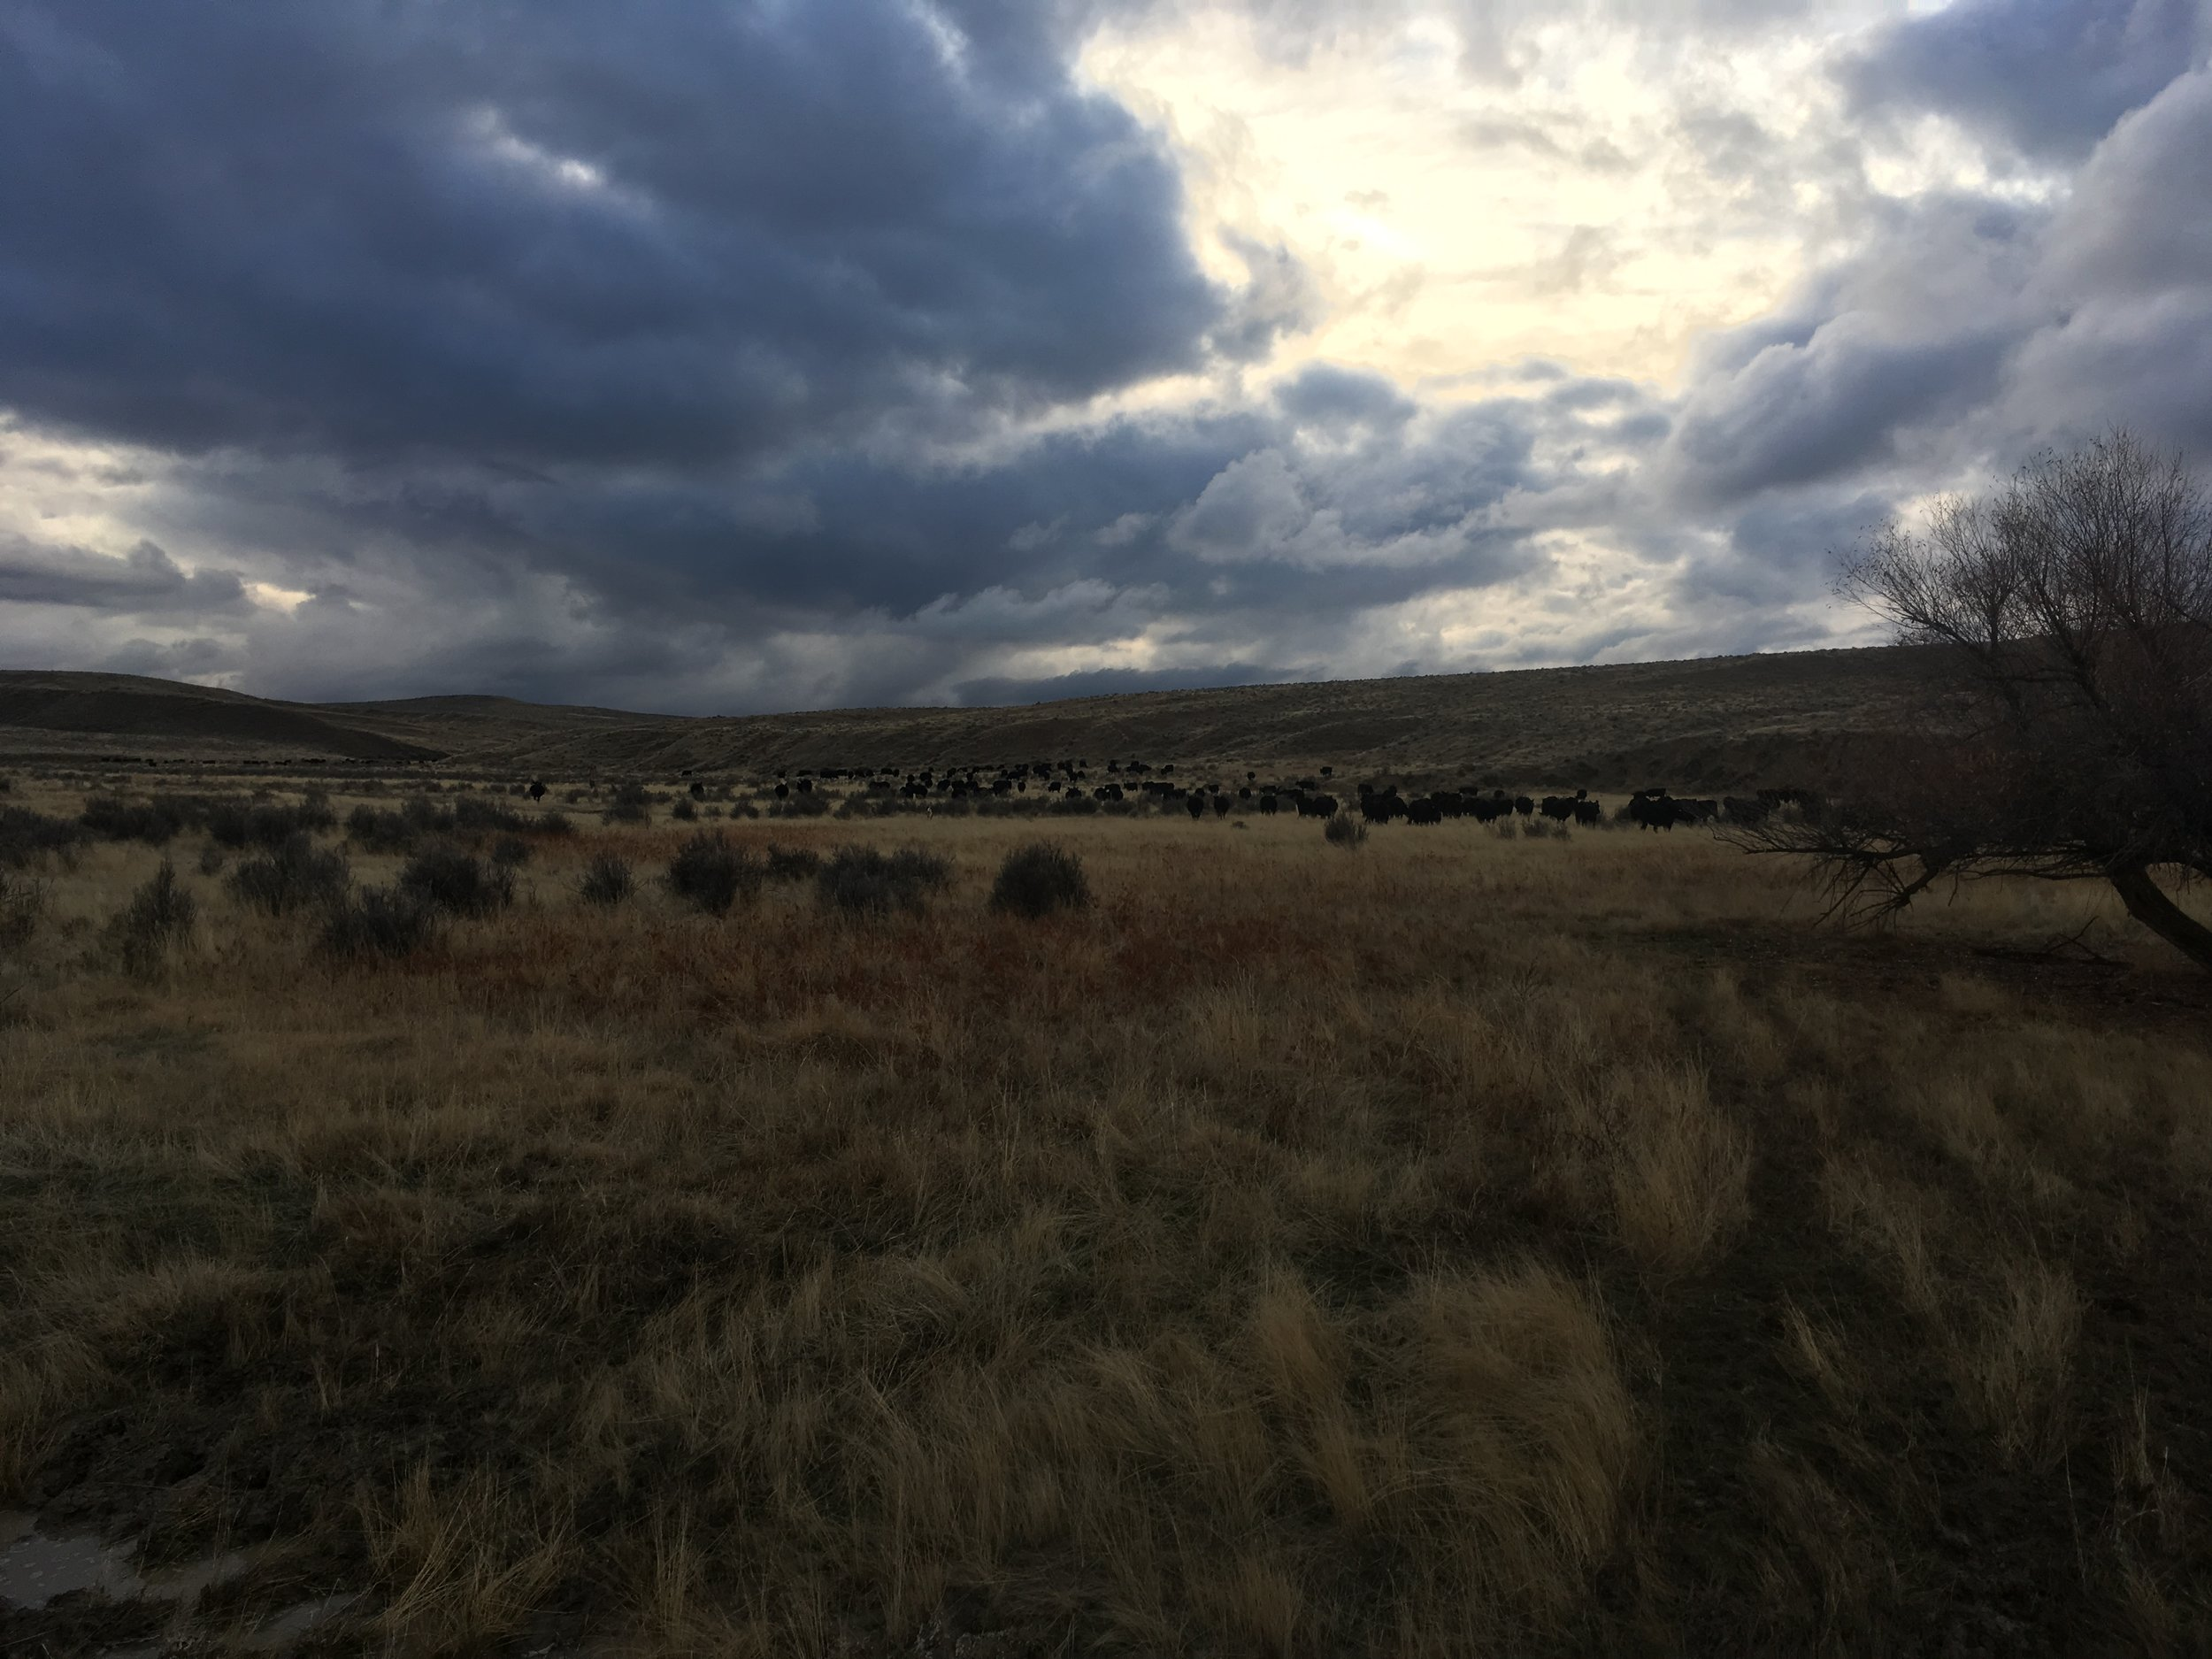 After the cows were sorted and taken to their pastures on Tuesday